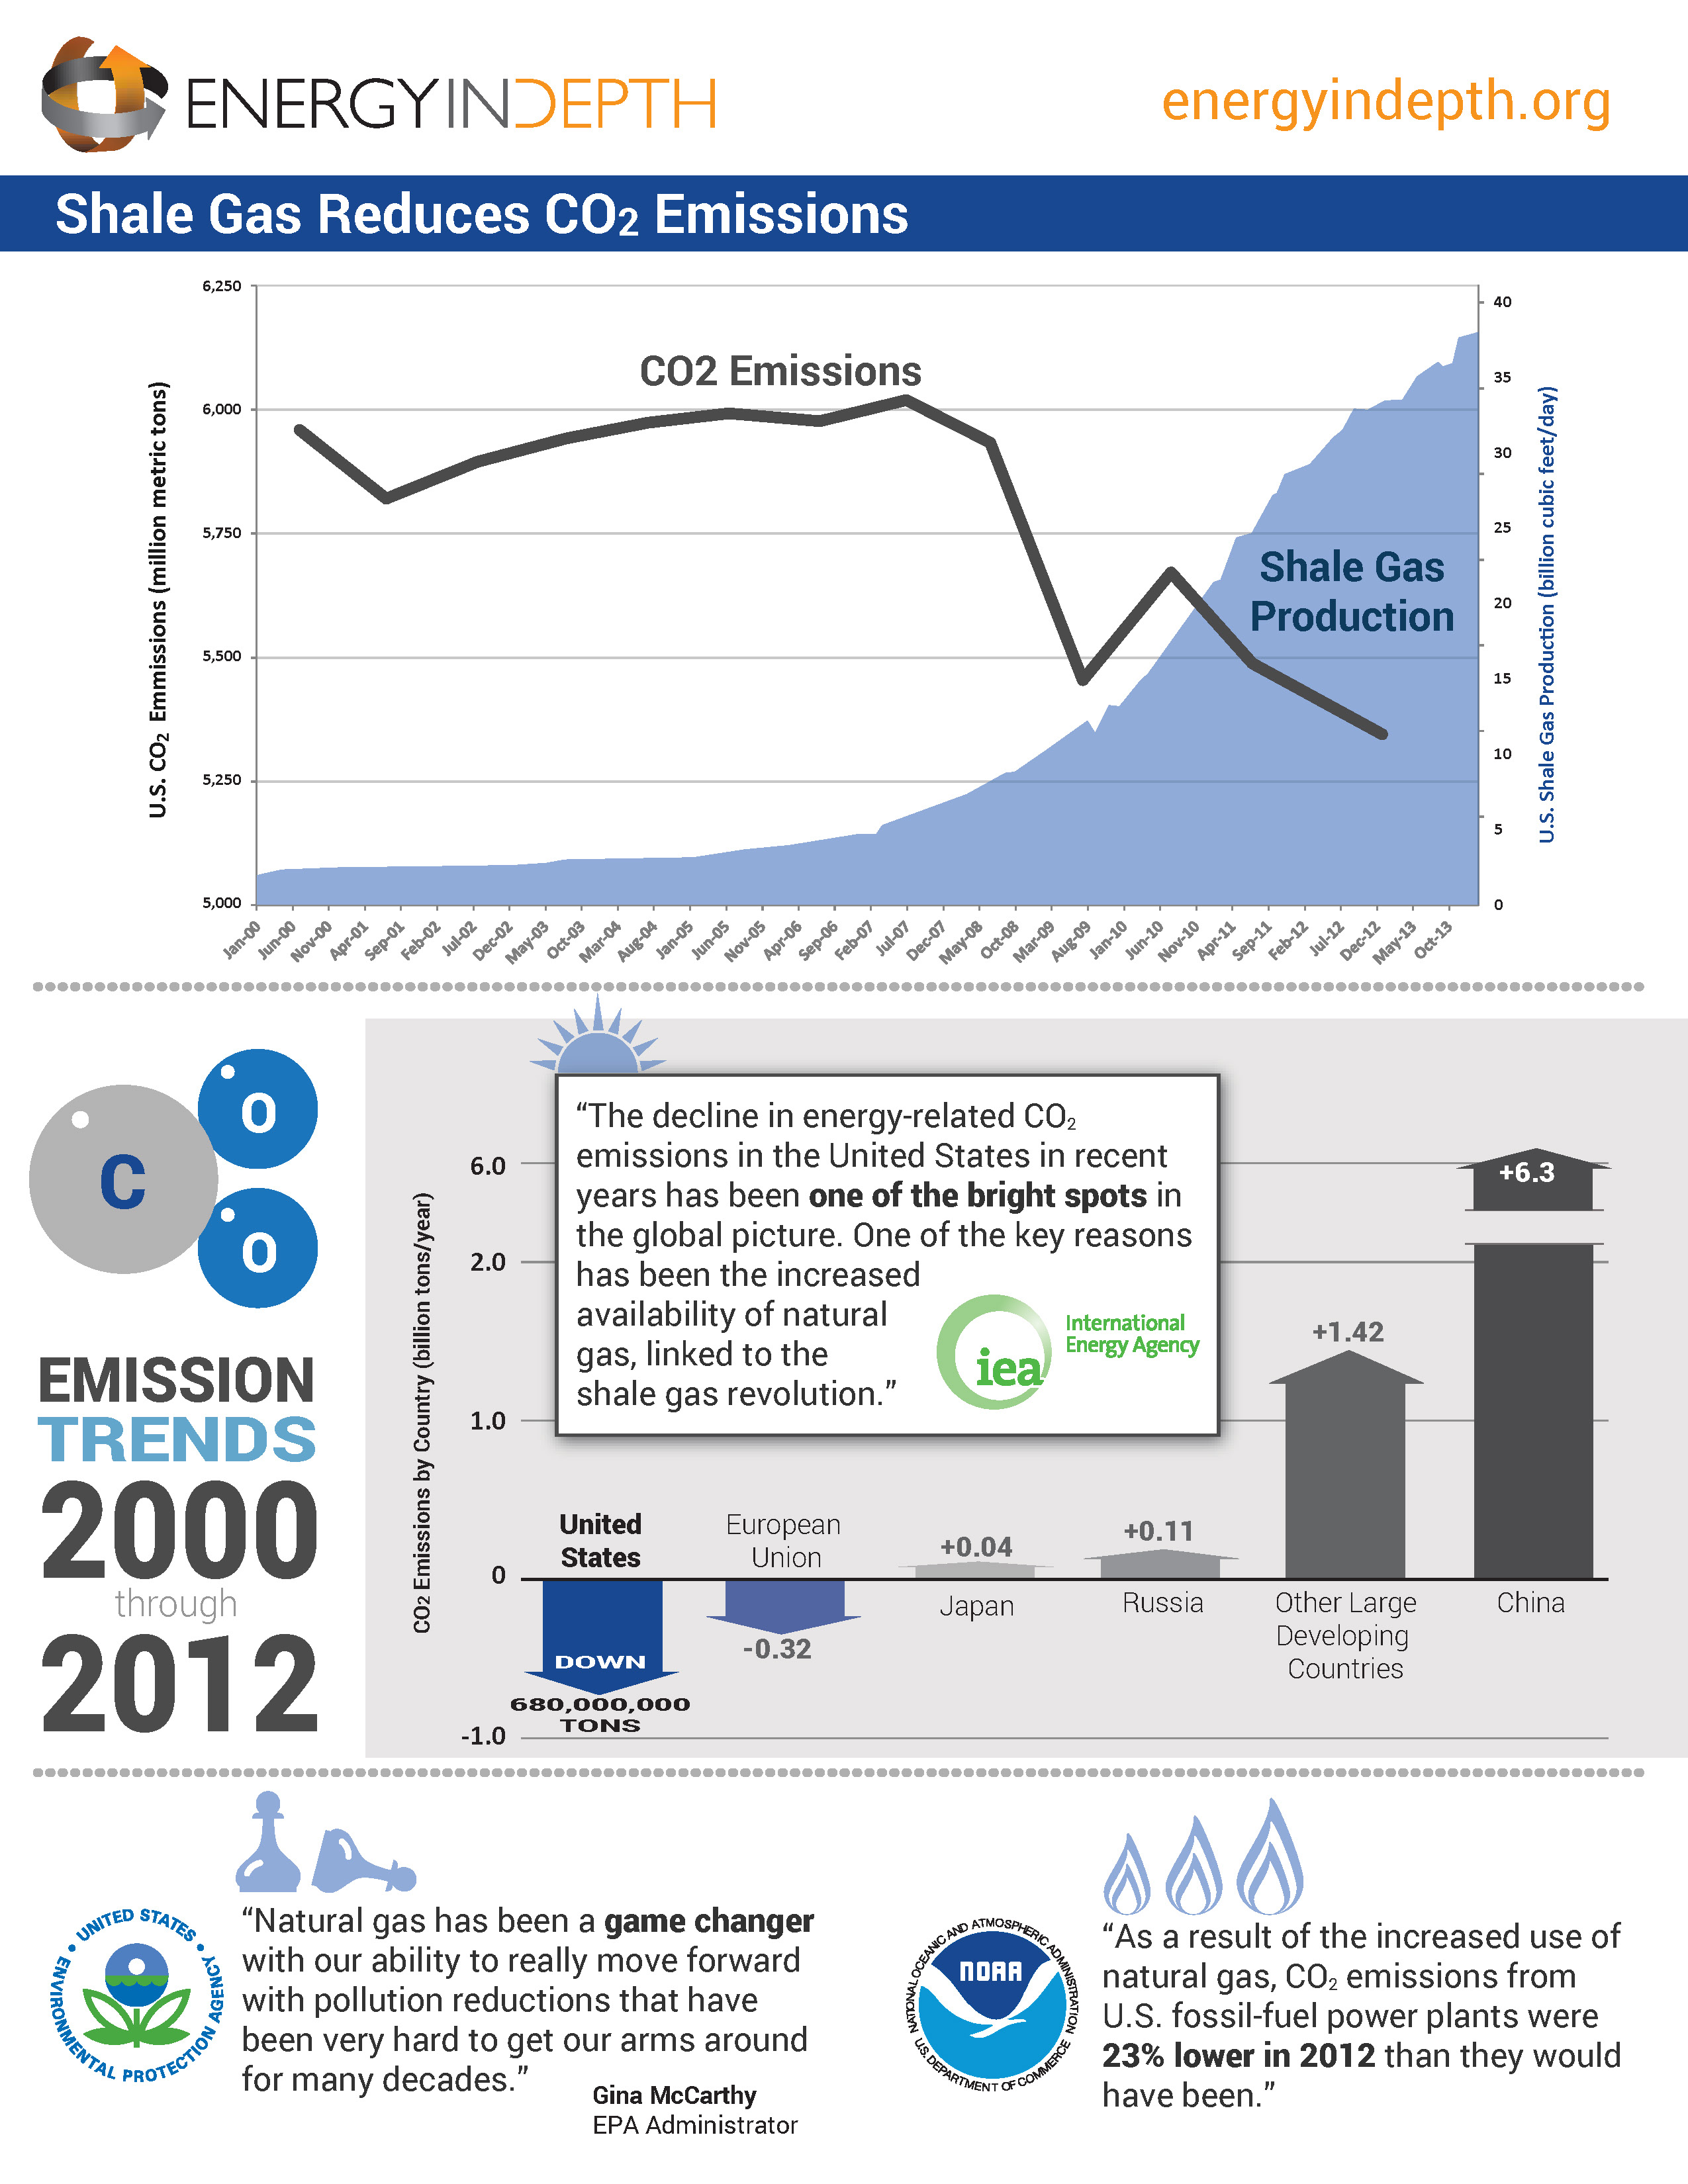 Shale-Gas-Reduces-CO2-Emissions